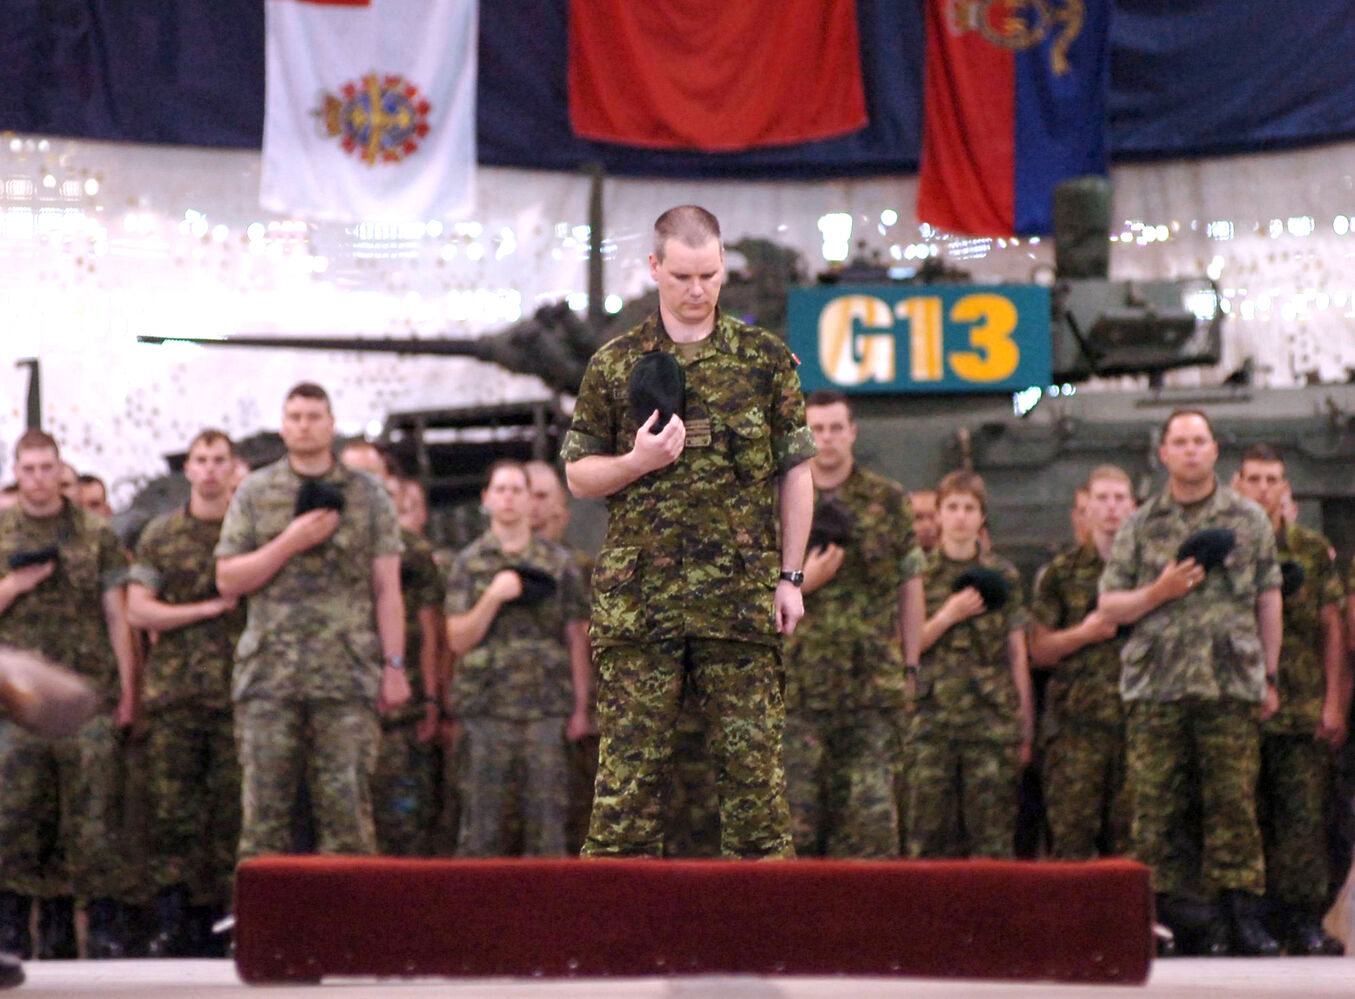 Acting Commanding Officer Maj. Liam McGarry leads his fellow soldiers in a moment of silence for fallen comrade, Capt. Nichola Goddard, during her memorial service at the First Regiment Royal Canadian Horse Artillery at CFB Shilo. (BRANDON SUN)